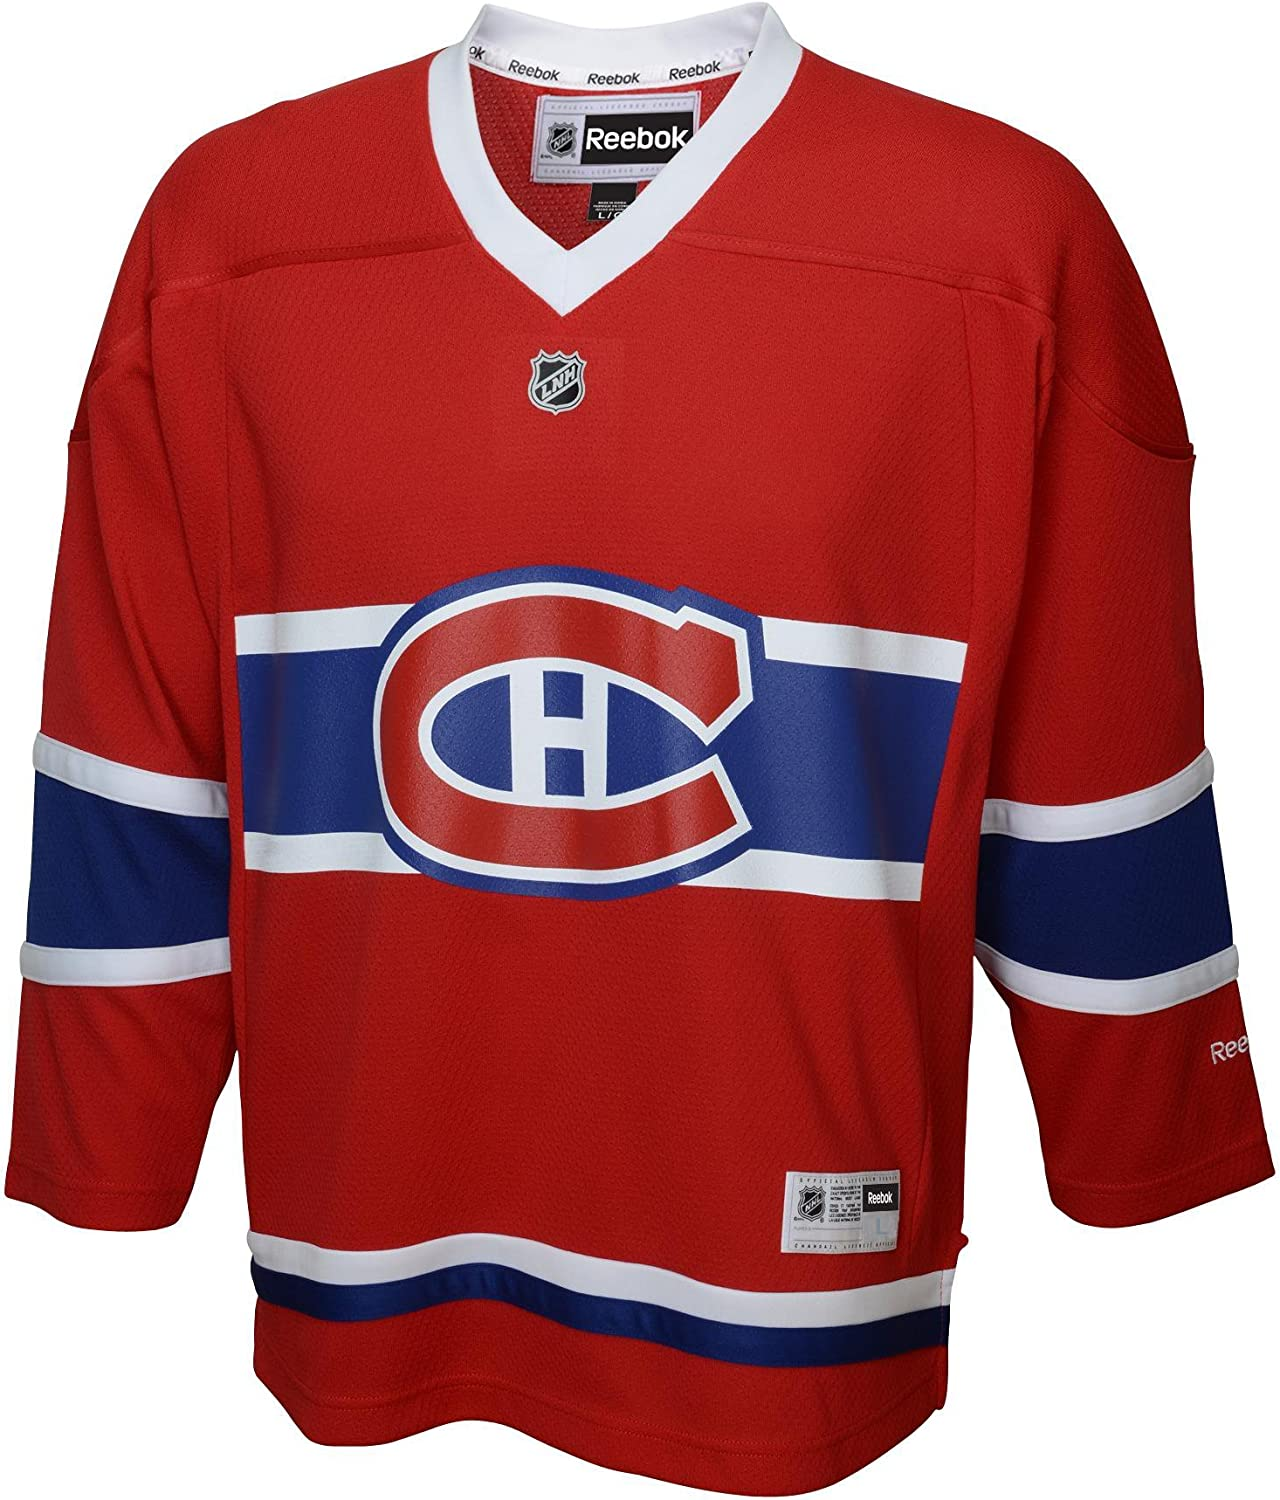 Nhl Montreal Canadiens Replica Youth Jersey Red Large X Large Jerseys Amazon Canada